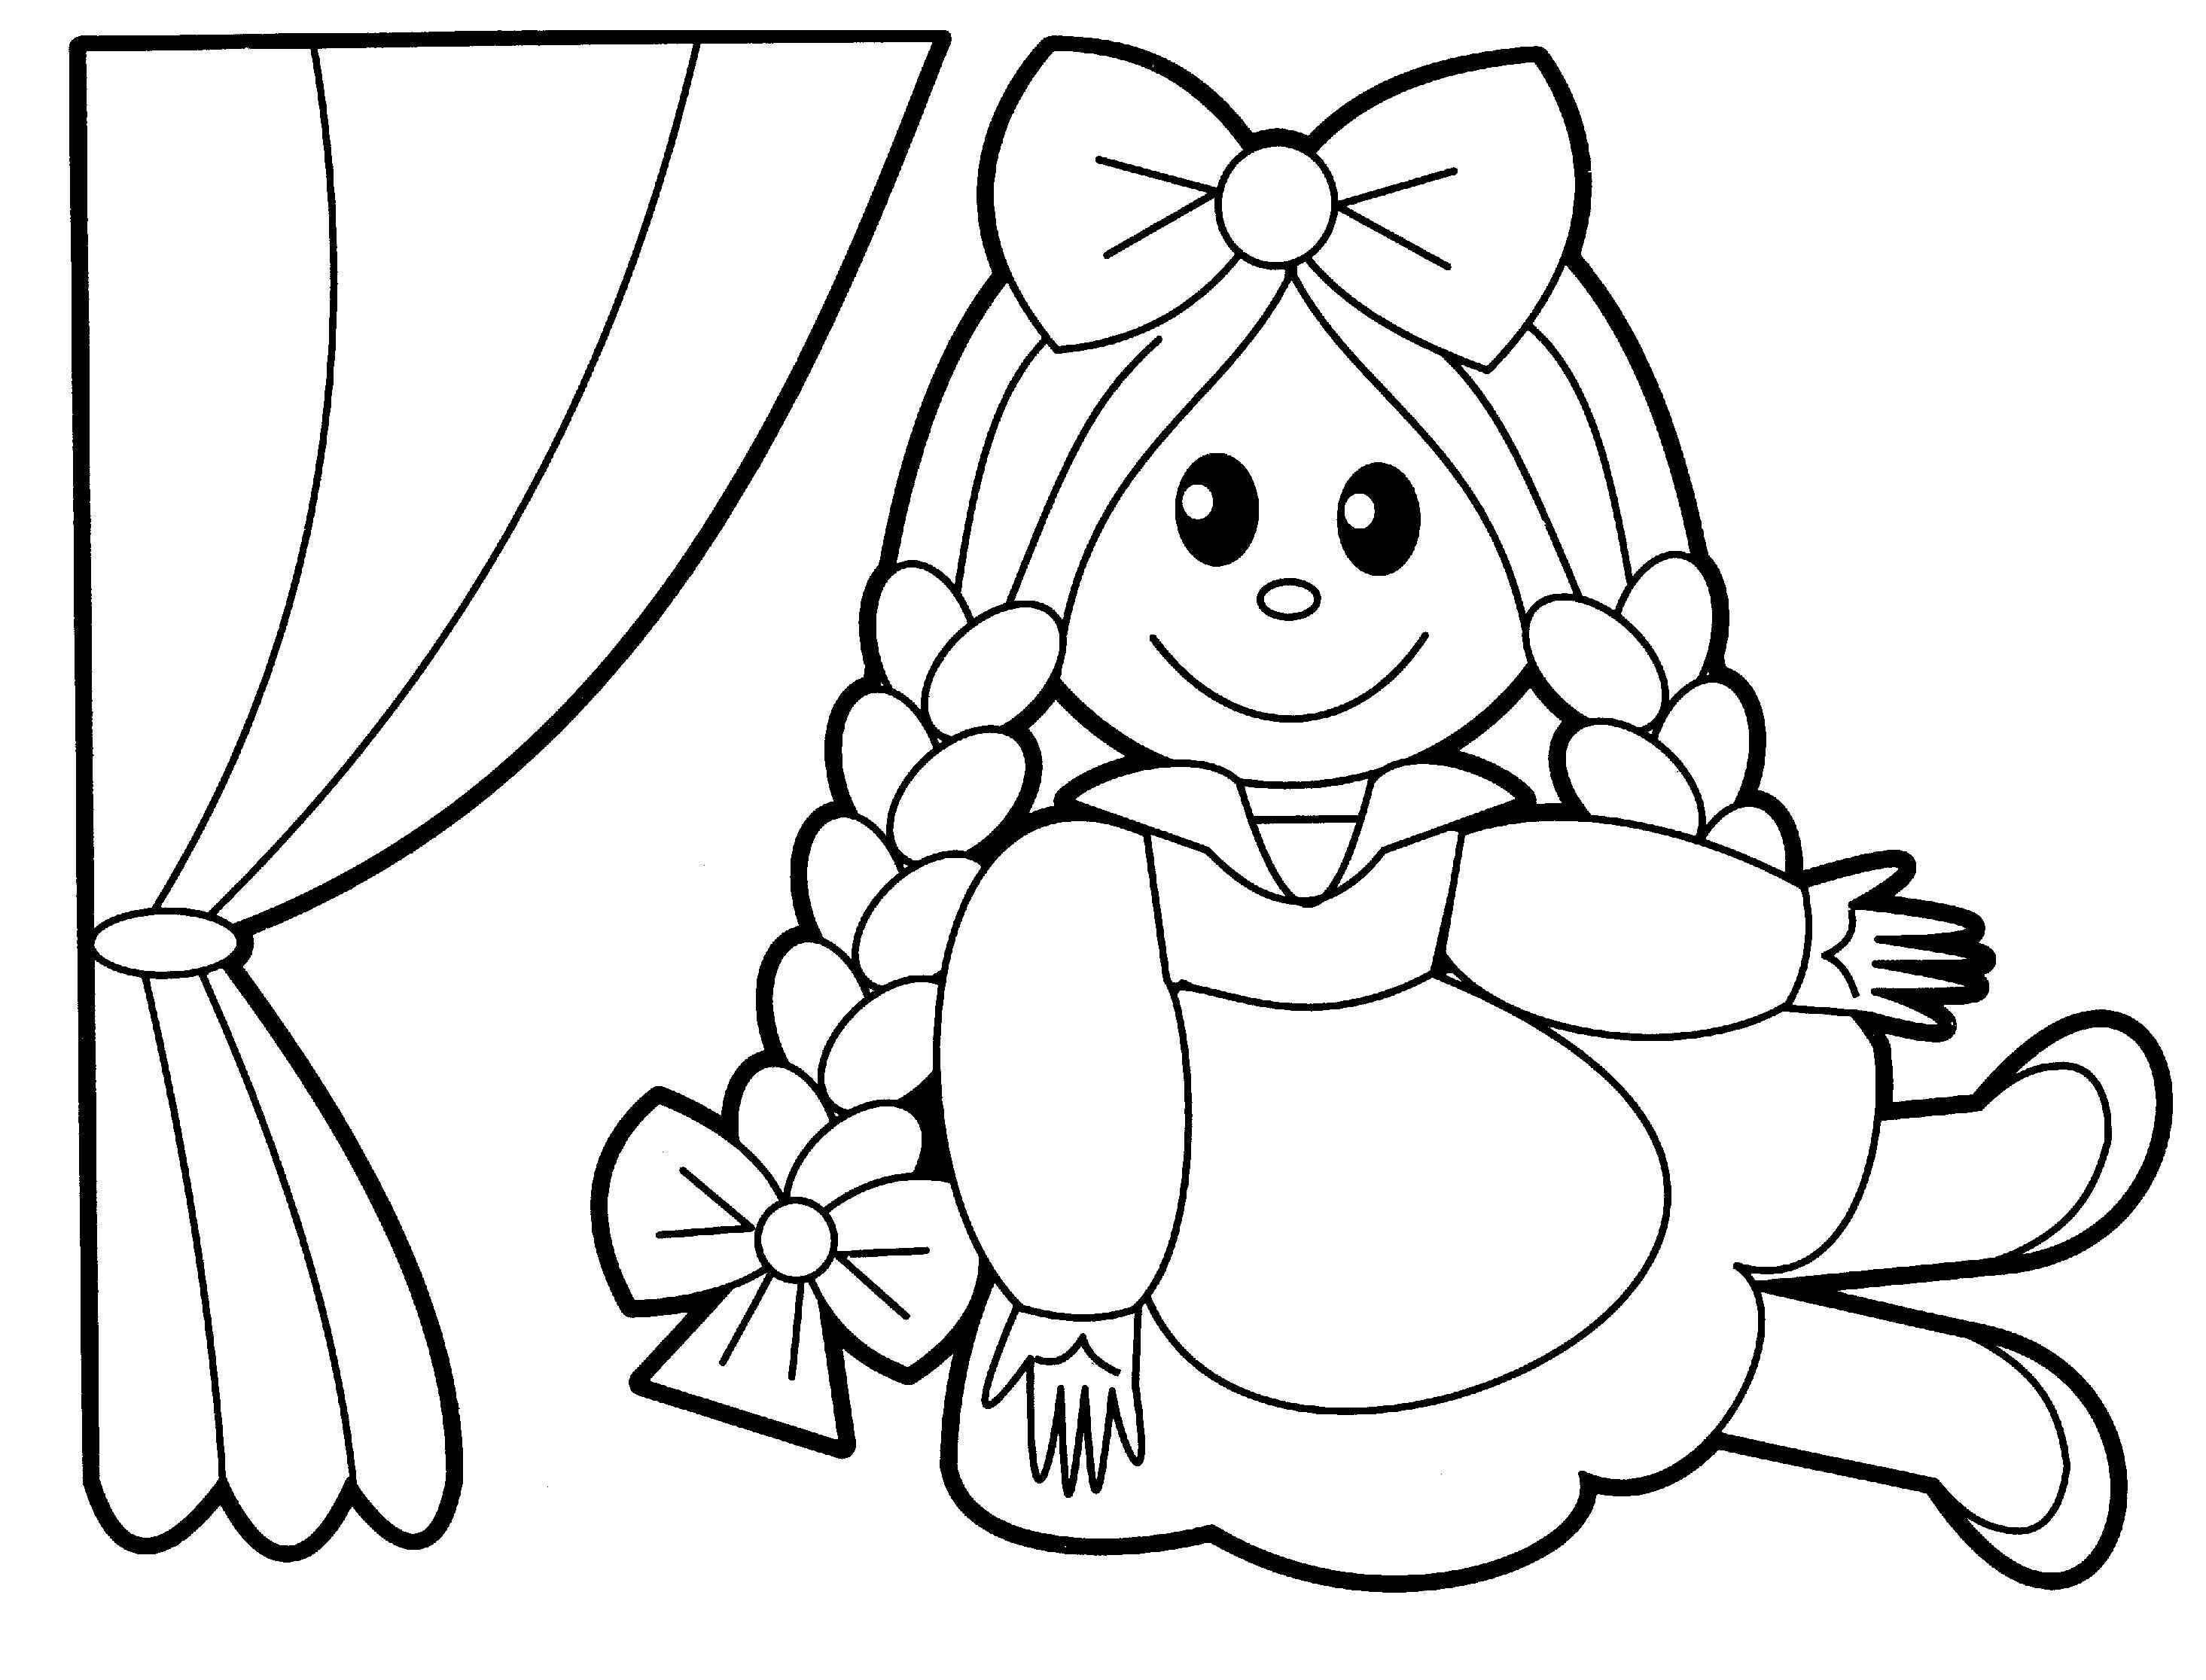 Baby Alive Coloring Pages Lovely Coloring Pages Baby Dolls Coloring Pictures Baby Dolls Monster Coloring Pages Toy Story Coloring Pages Cartoon Coloring Pages